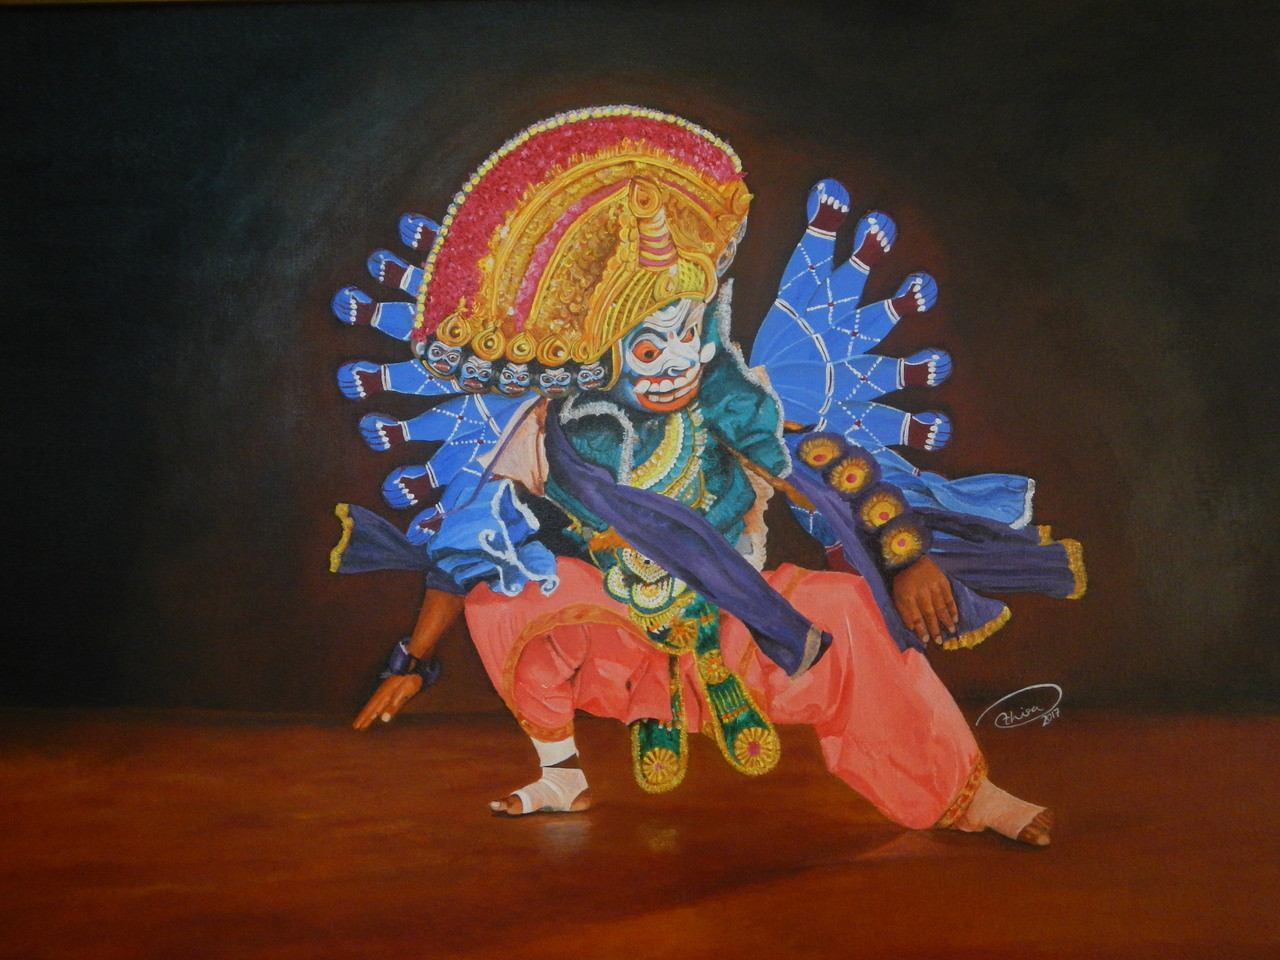 e7b13a071 Buy Chhau Dance Form Handmade Painting by Athira Raj. Code:ART_4032_25180 -  Paintings for Sale online in India.